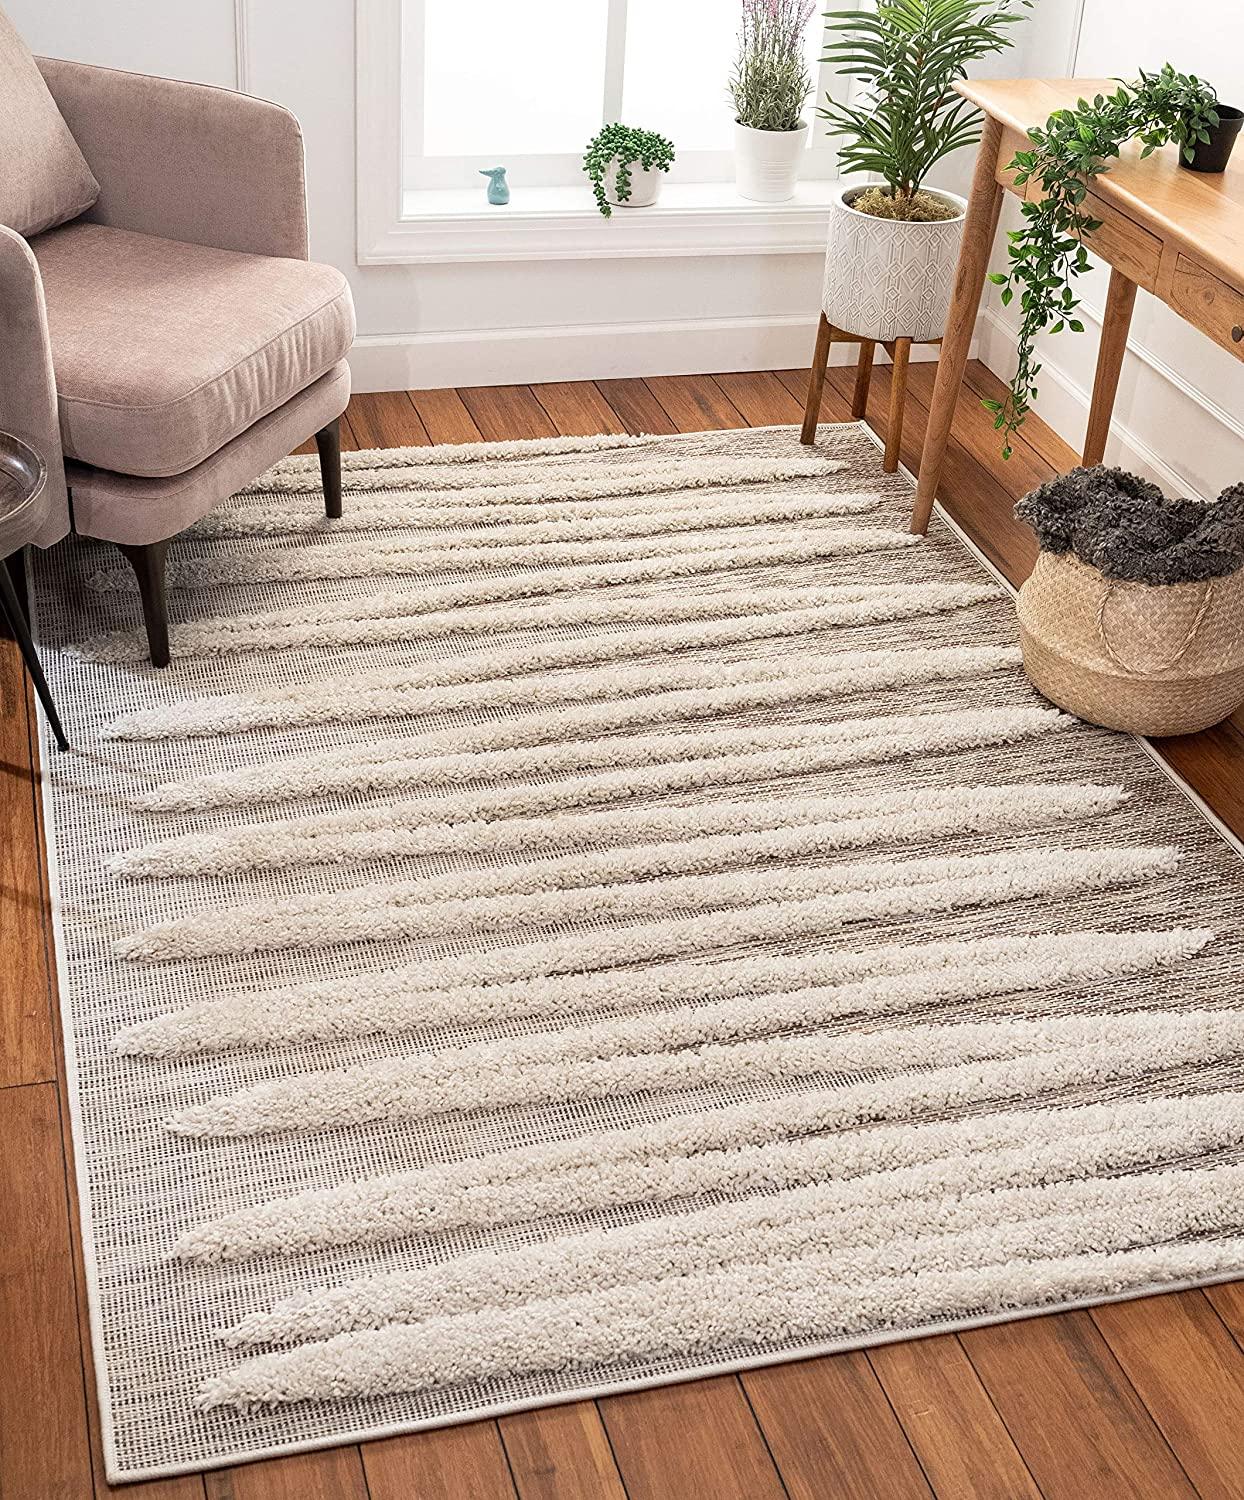 Amazon Com Well Woven Bergen Beige Flat Weave Hi Low Pile Geometric Stripes Moroccan Tribal Area Rug 8x10 7 10 X 9 10 Home Kitchen